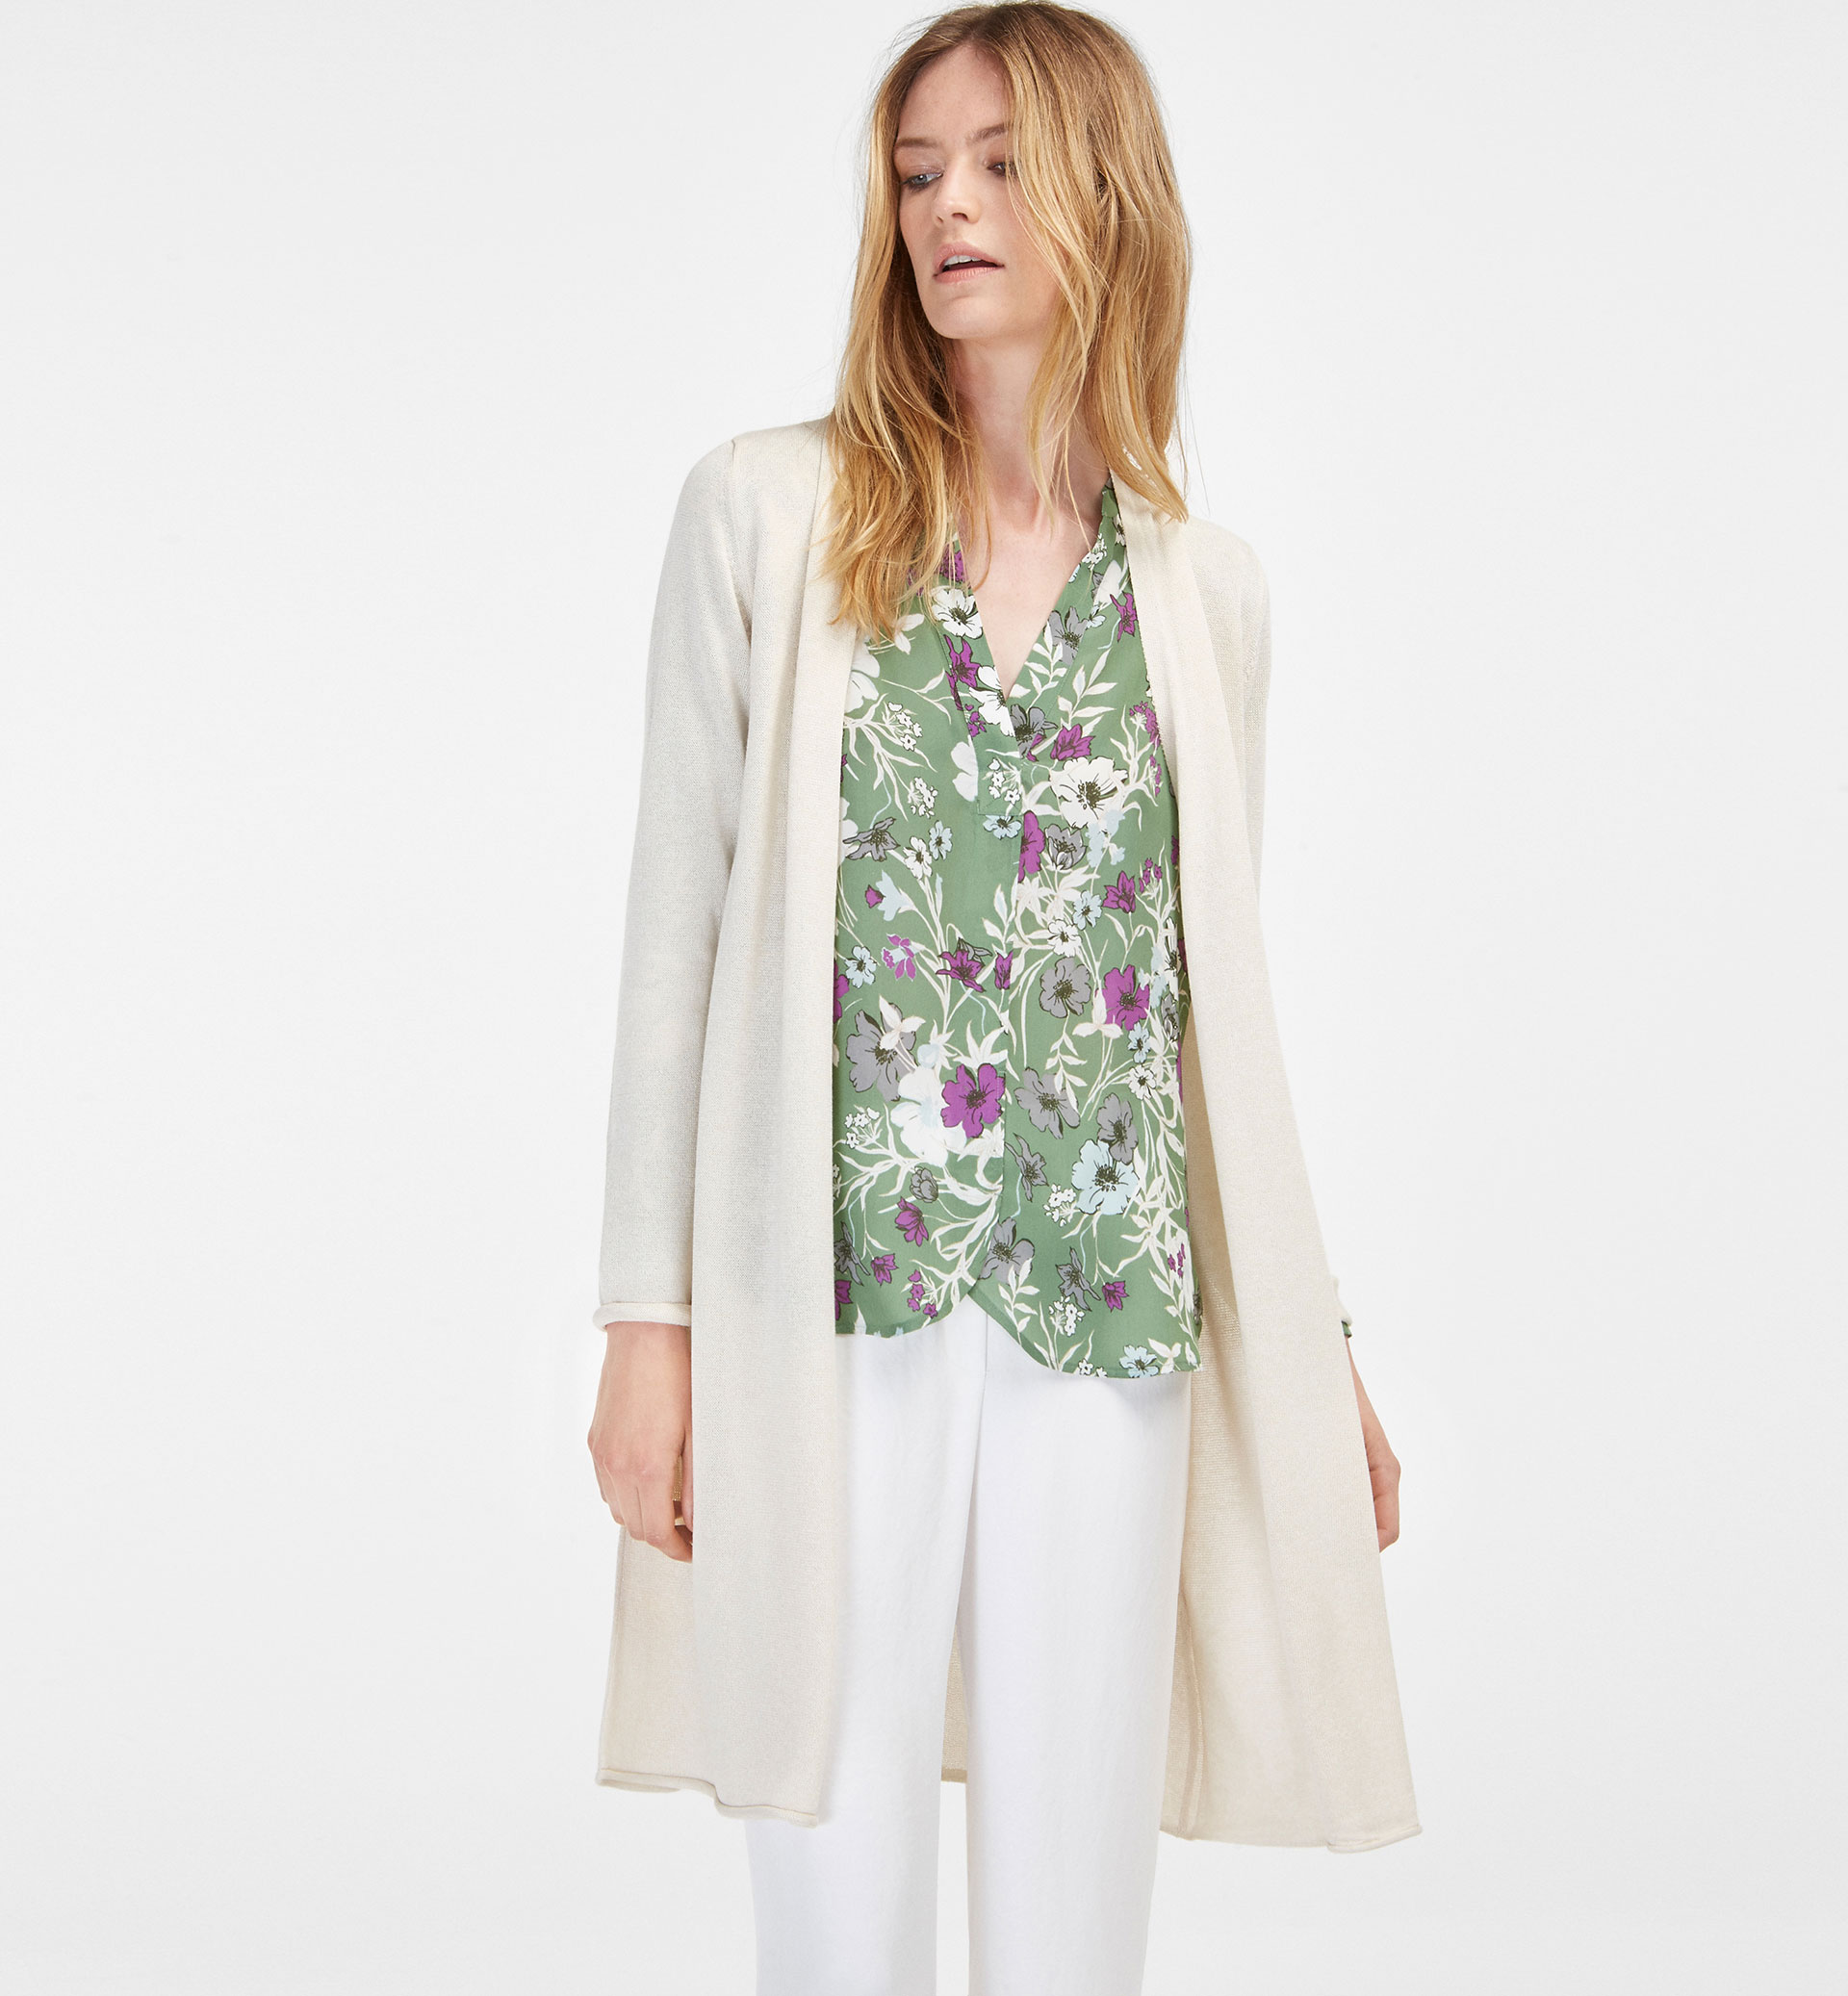 TEXTURED WEAVE CARDIGAN WITH PLEAT DETAIL AT THE BACK